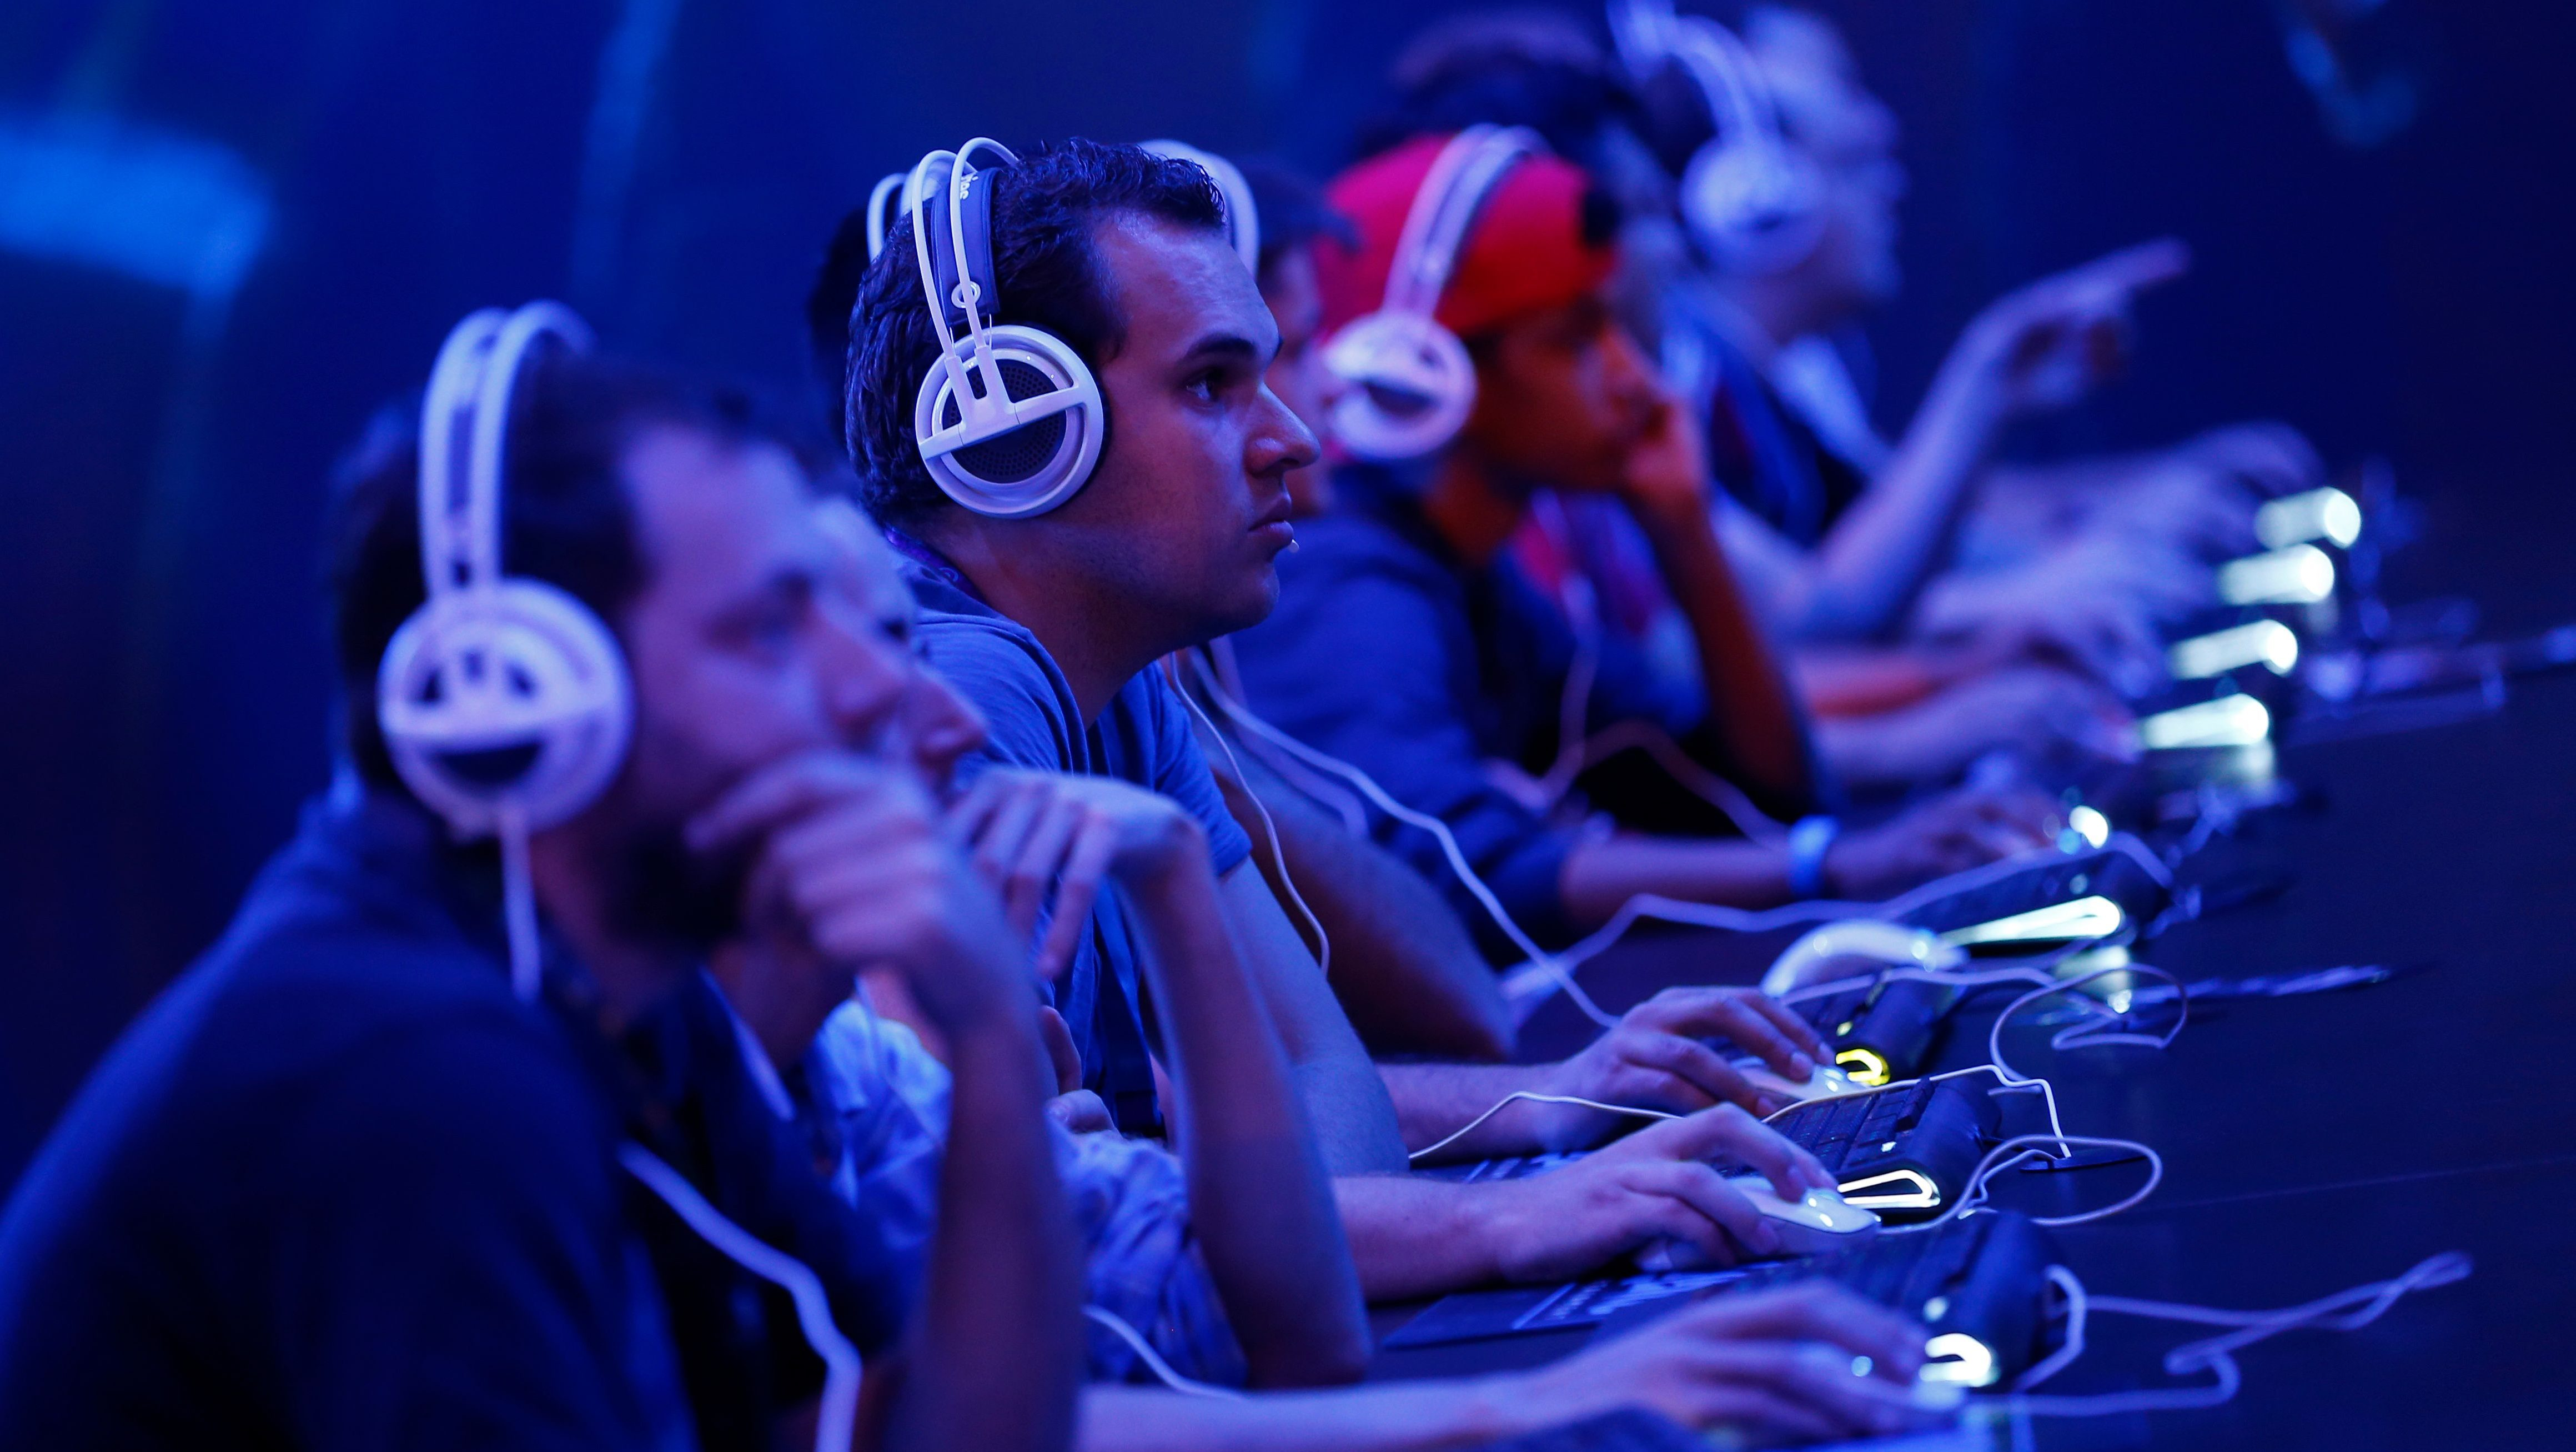 """Gamers play the """"StarCraft II"""" developed by video game producer Blizzard Entertainment during the Gamescom 2015 fair in Cologne, Germany August 5, 2015. The Gamescom convention, Europe's largest video games trade fair, runs from August 5 to August 9. REUTERS/Kai Pfaffenbach TPX IMAGES OF THE DAY - LR2EB850TGK8W"""